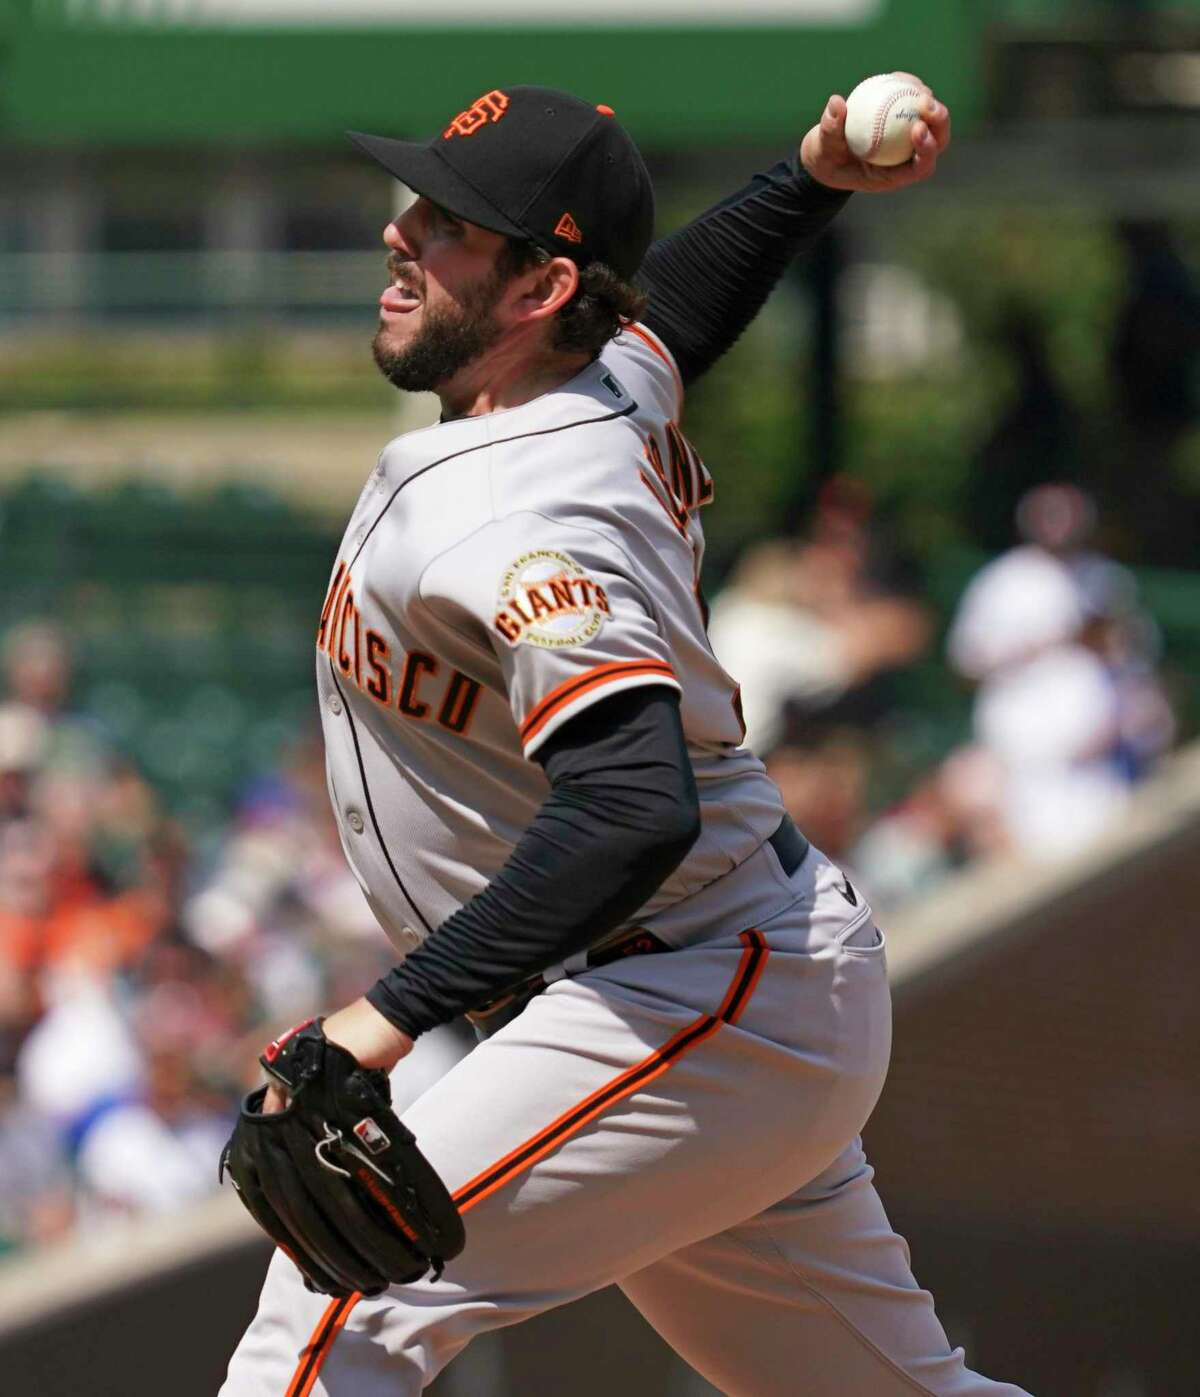 CHICAGO, ILLINOIS - SEPTEMBER 10: Dominic Leone #52 of the San Francisco Giants throws a pitch during the first inning of a game against the Chicago Cubs at Wrigley Field on September 10, 2021 in Chicago, Illinois. (Photo by Nuccio DiNuzzo/Getty Images)